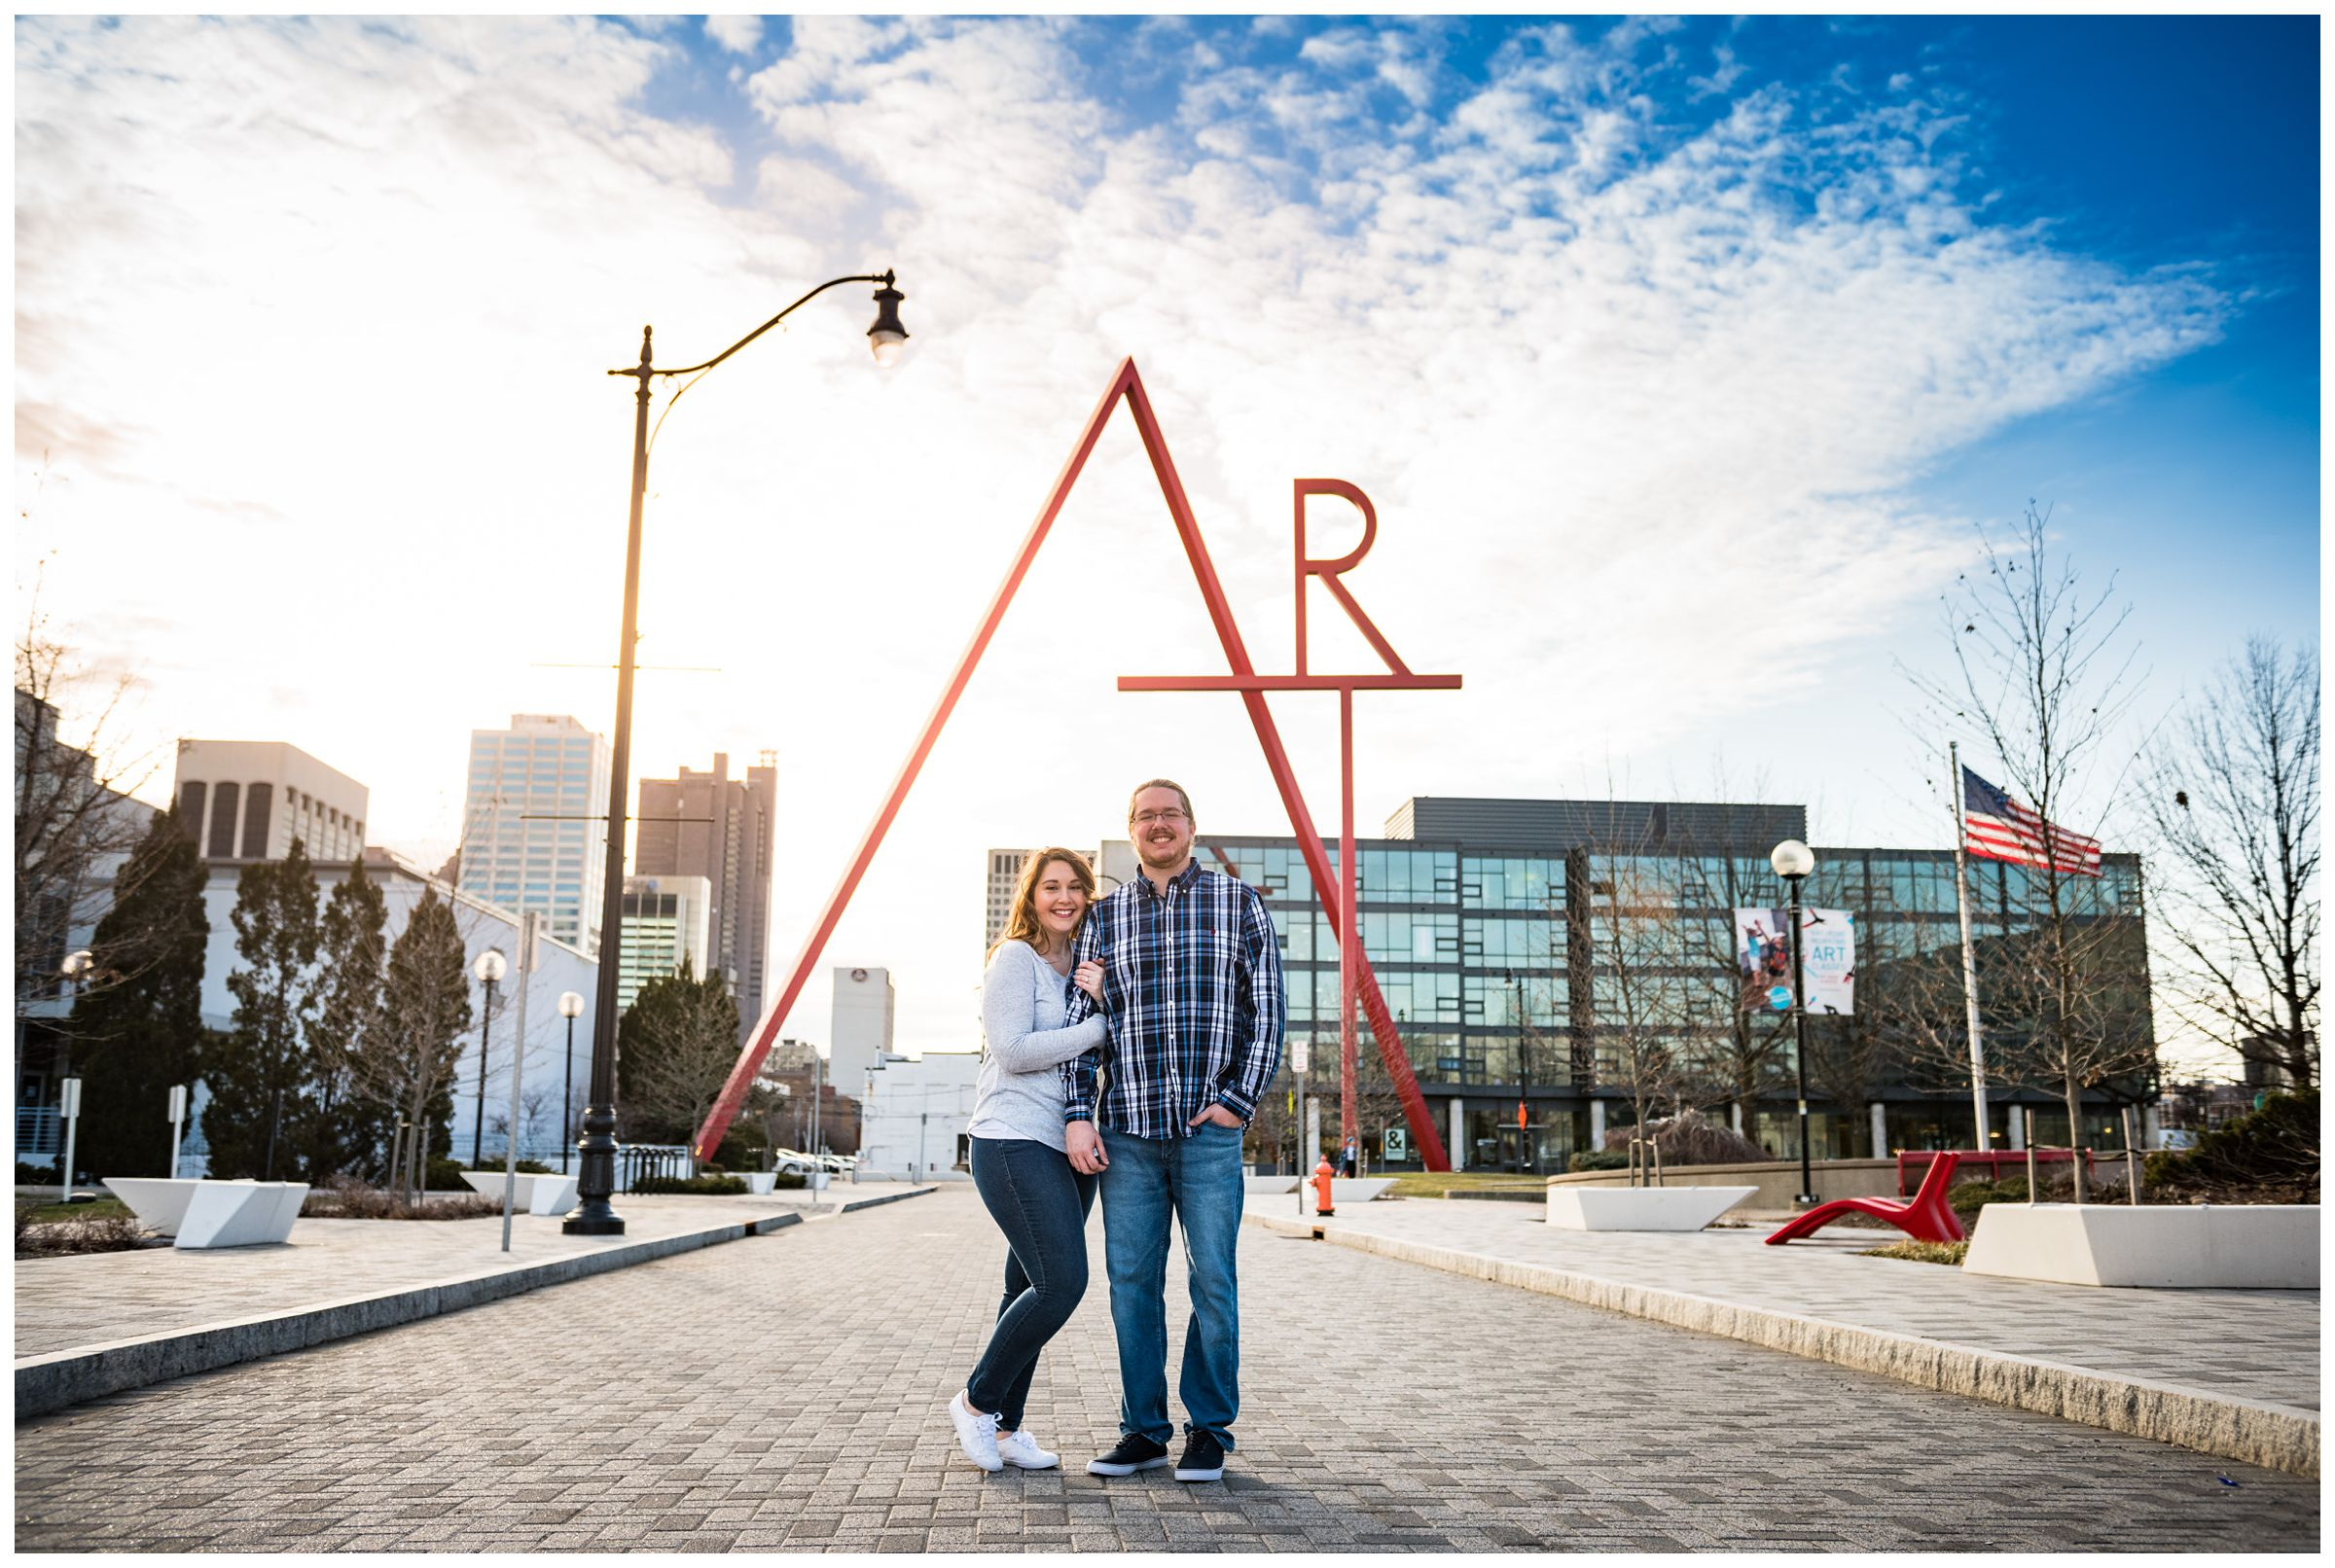 engaged couple photographed in front of Art sculpture in downtown Columbus by Ohio wedding photographer